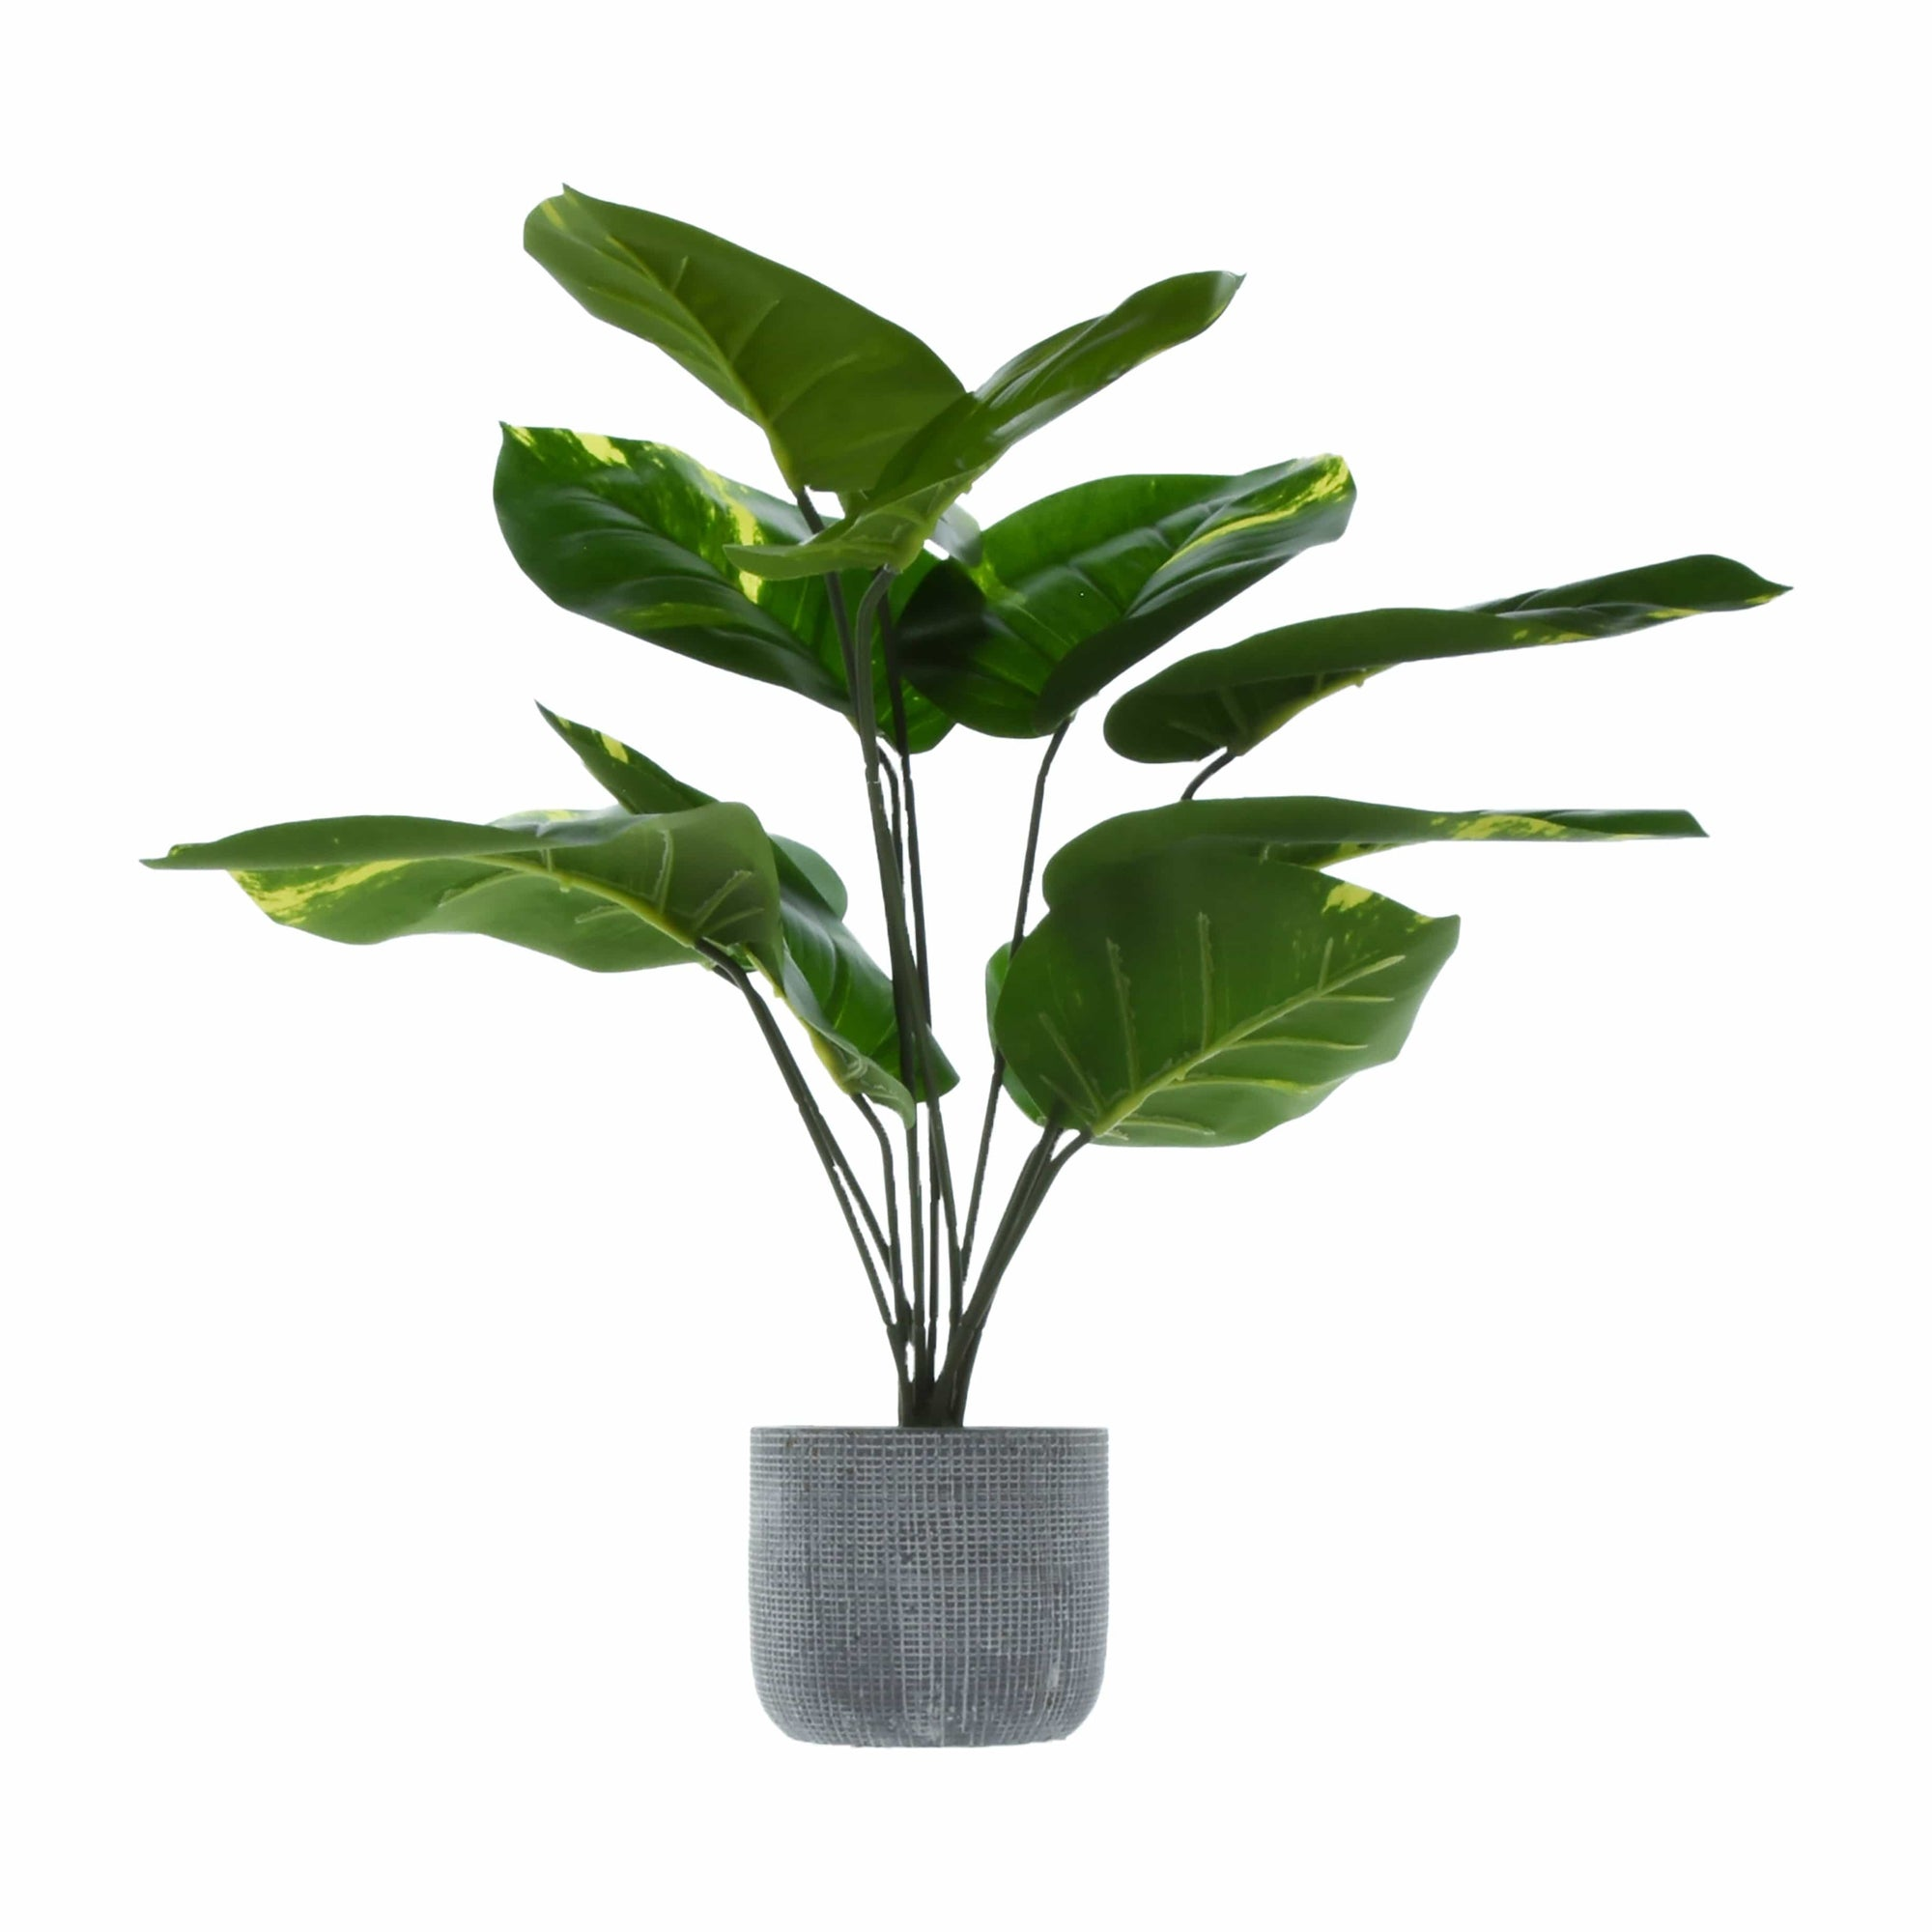 Candlelight Home Artificial Plants & Flowers Large Tropical Plant Green in Round Cement Pot 57cm 1PK